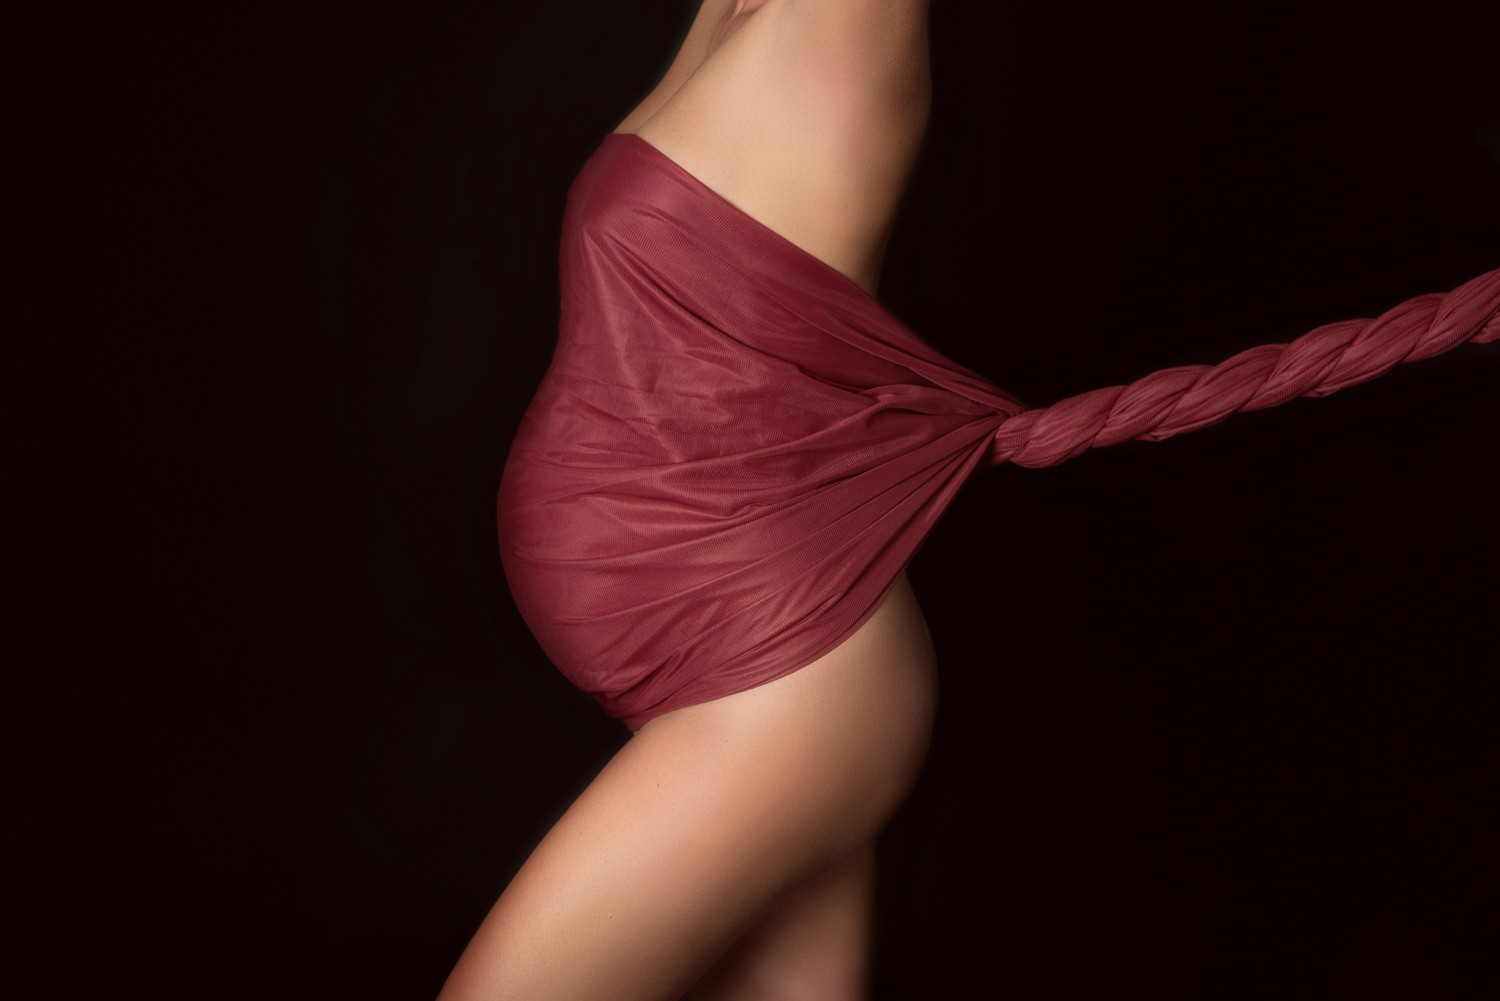 maternity-and-pregnancy-tagg-photography